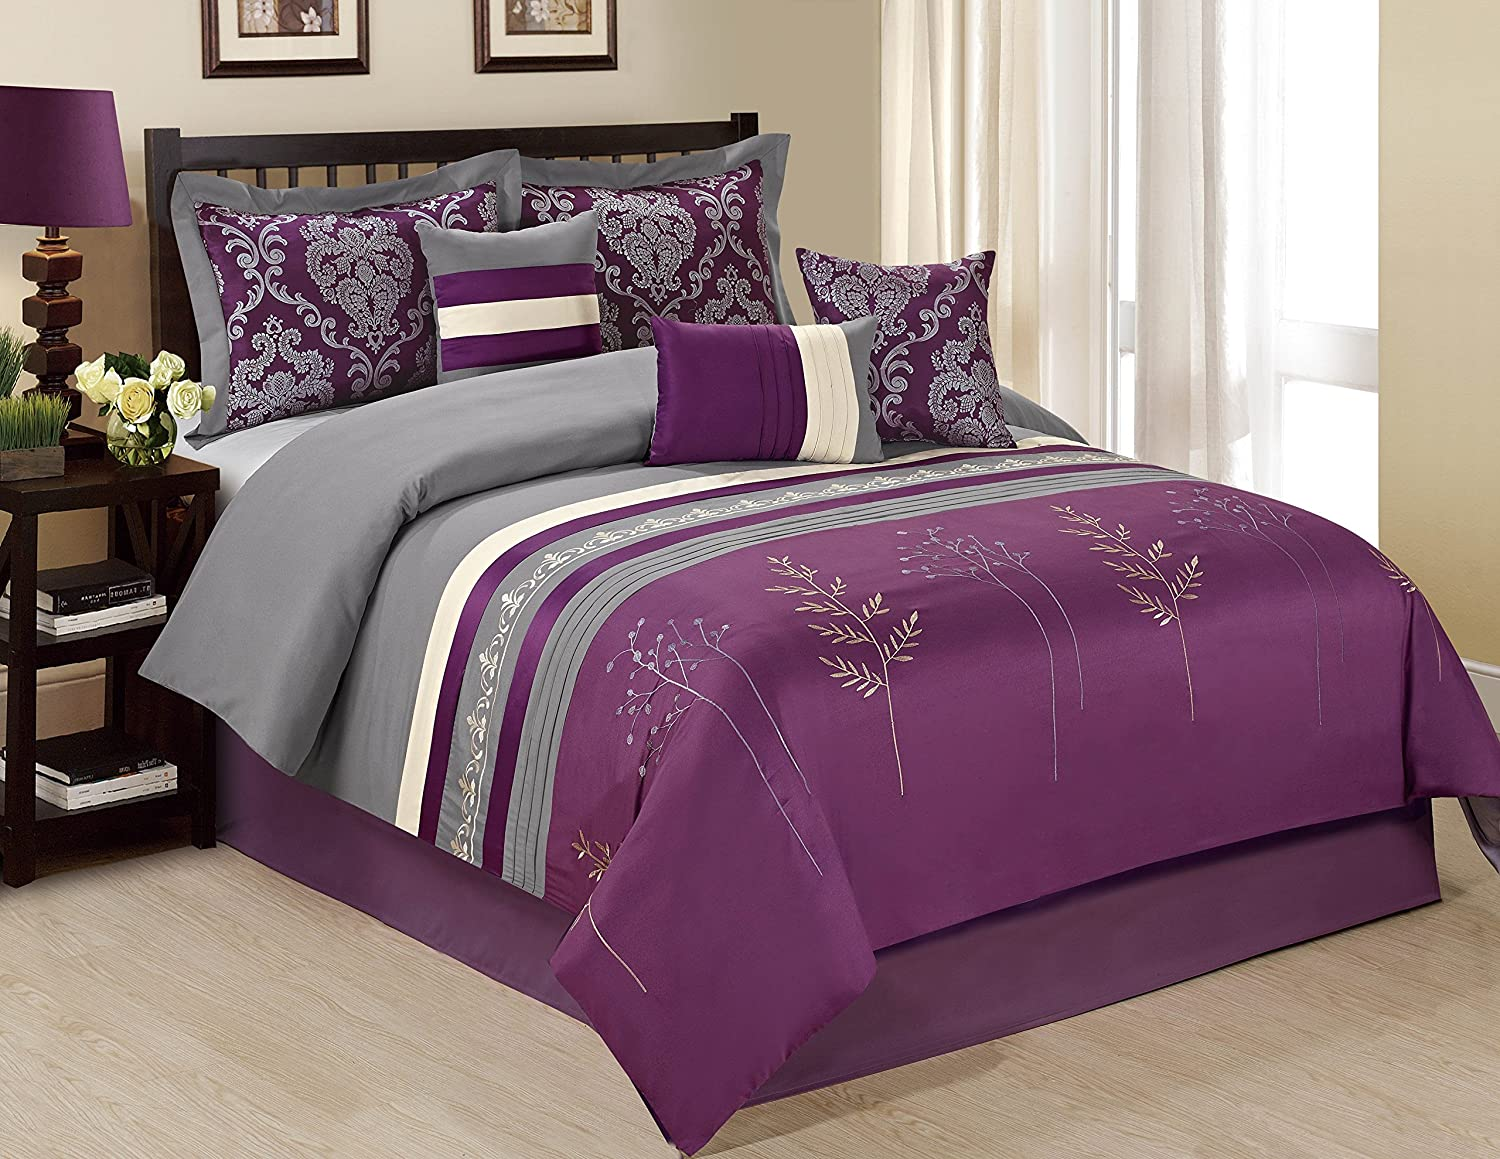 Bednlinens 7 Piece Dala Tree Branch Print & Embroidery Purple/Grey Comforter Set Queen King Cal.King King, Purple